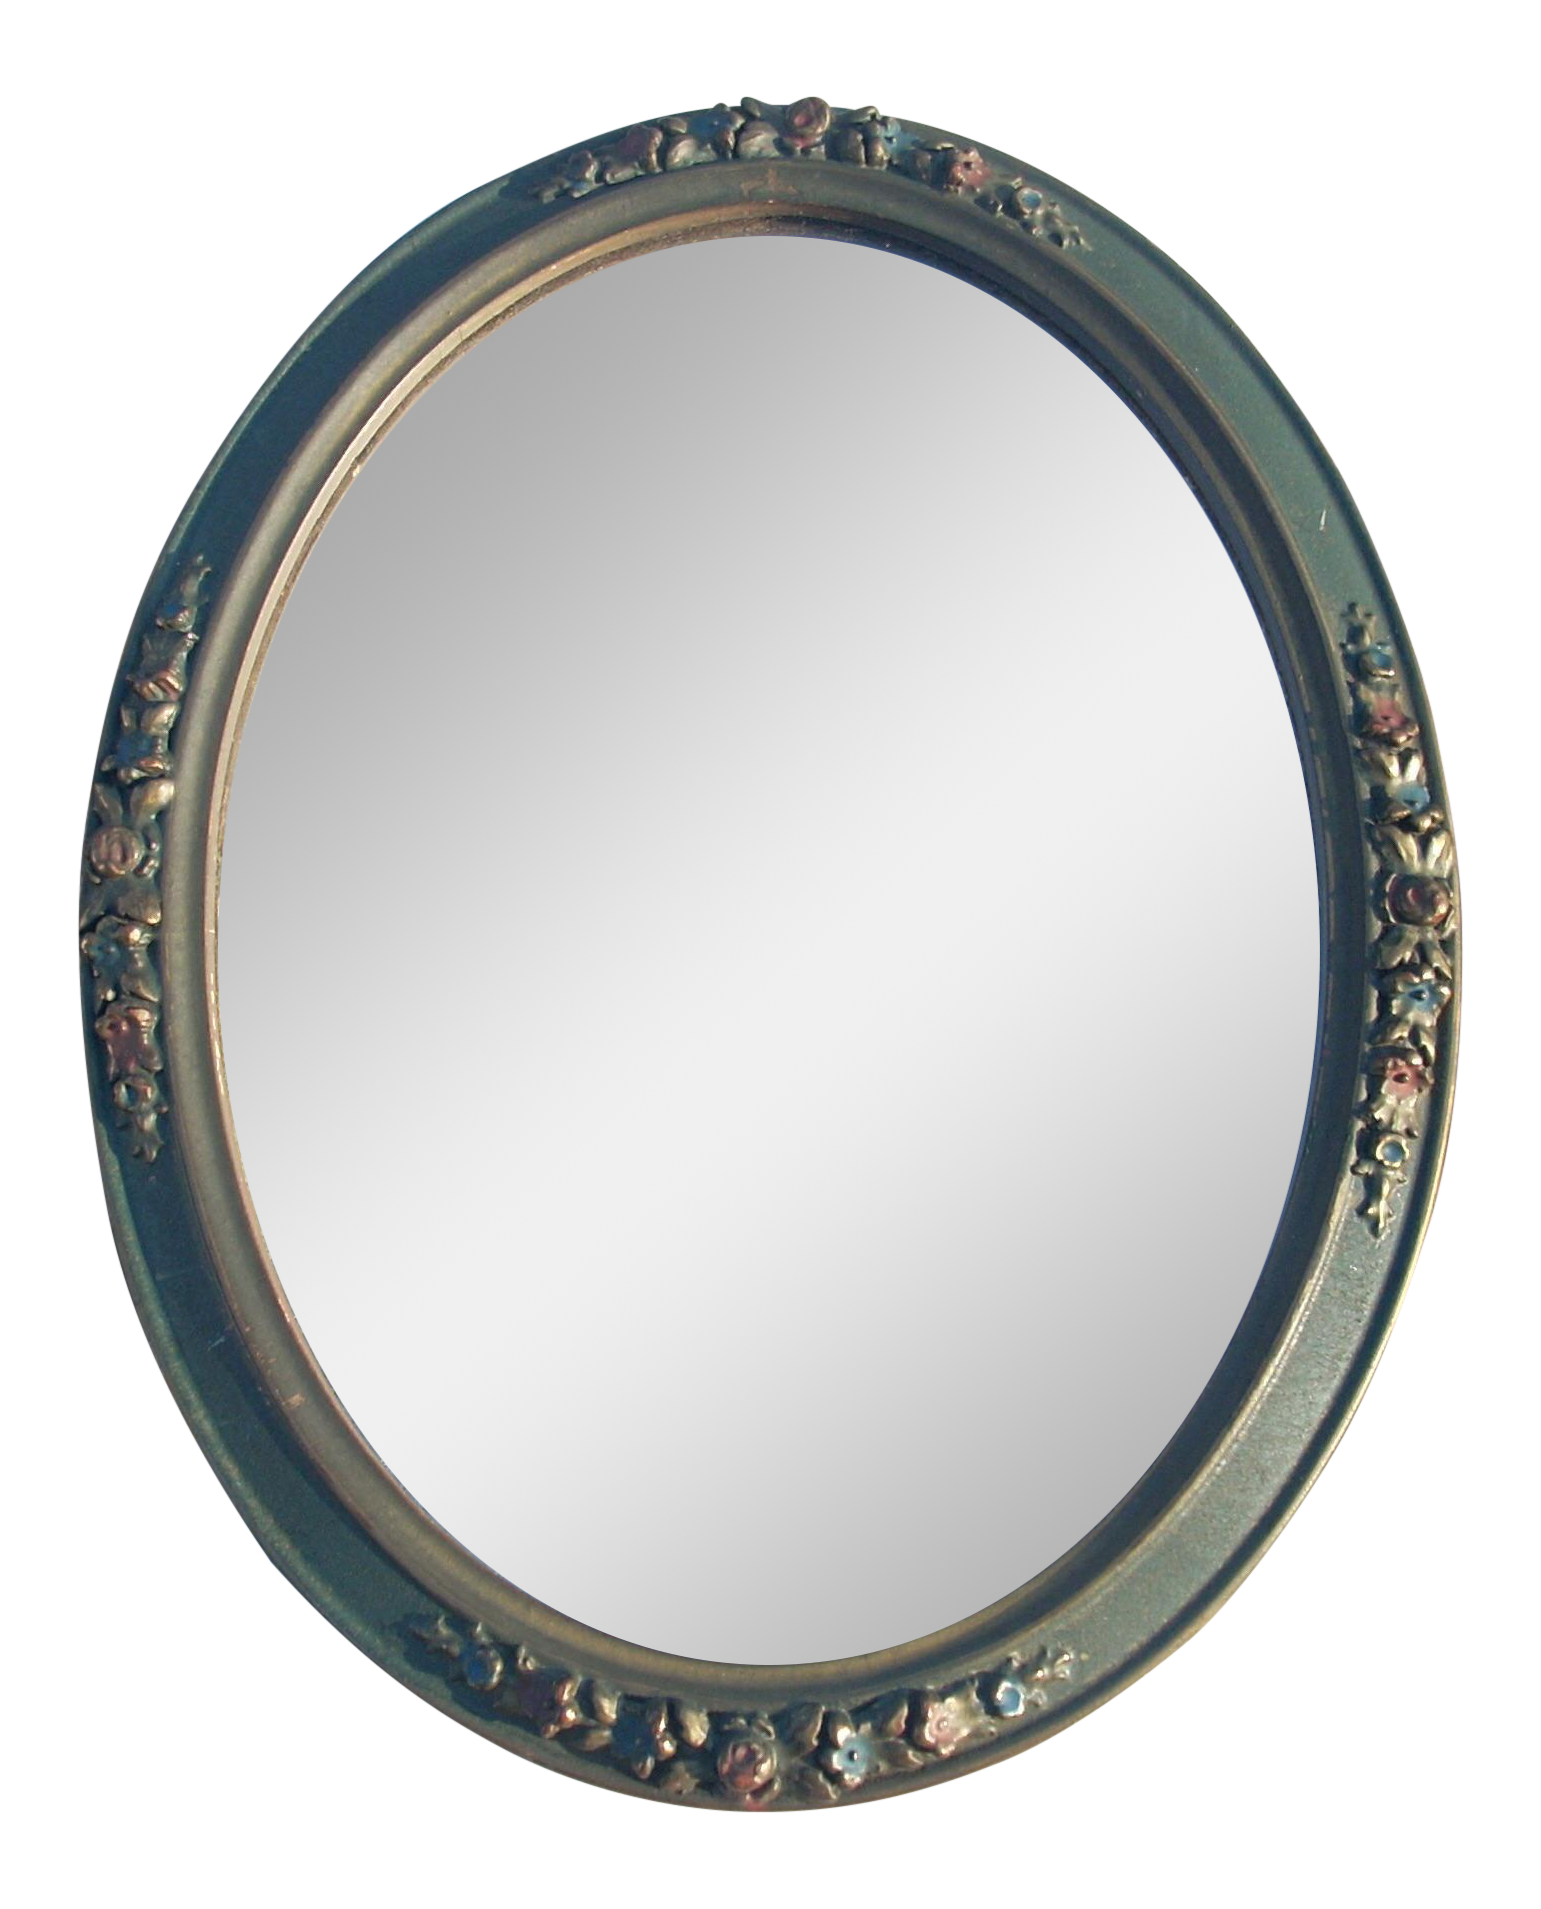 1920 S Antique Oval Wall Mirror Chairish